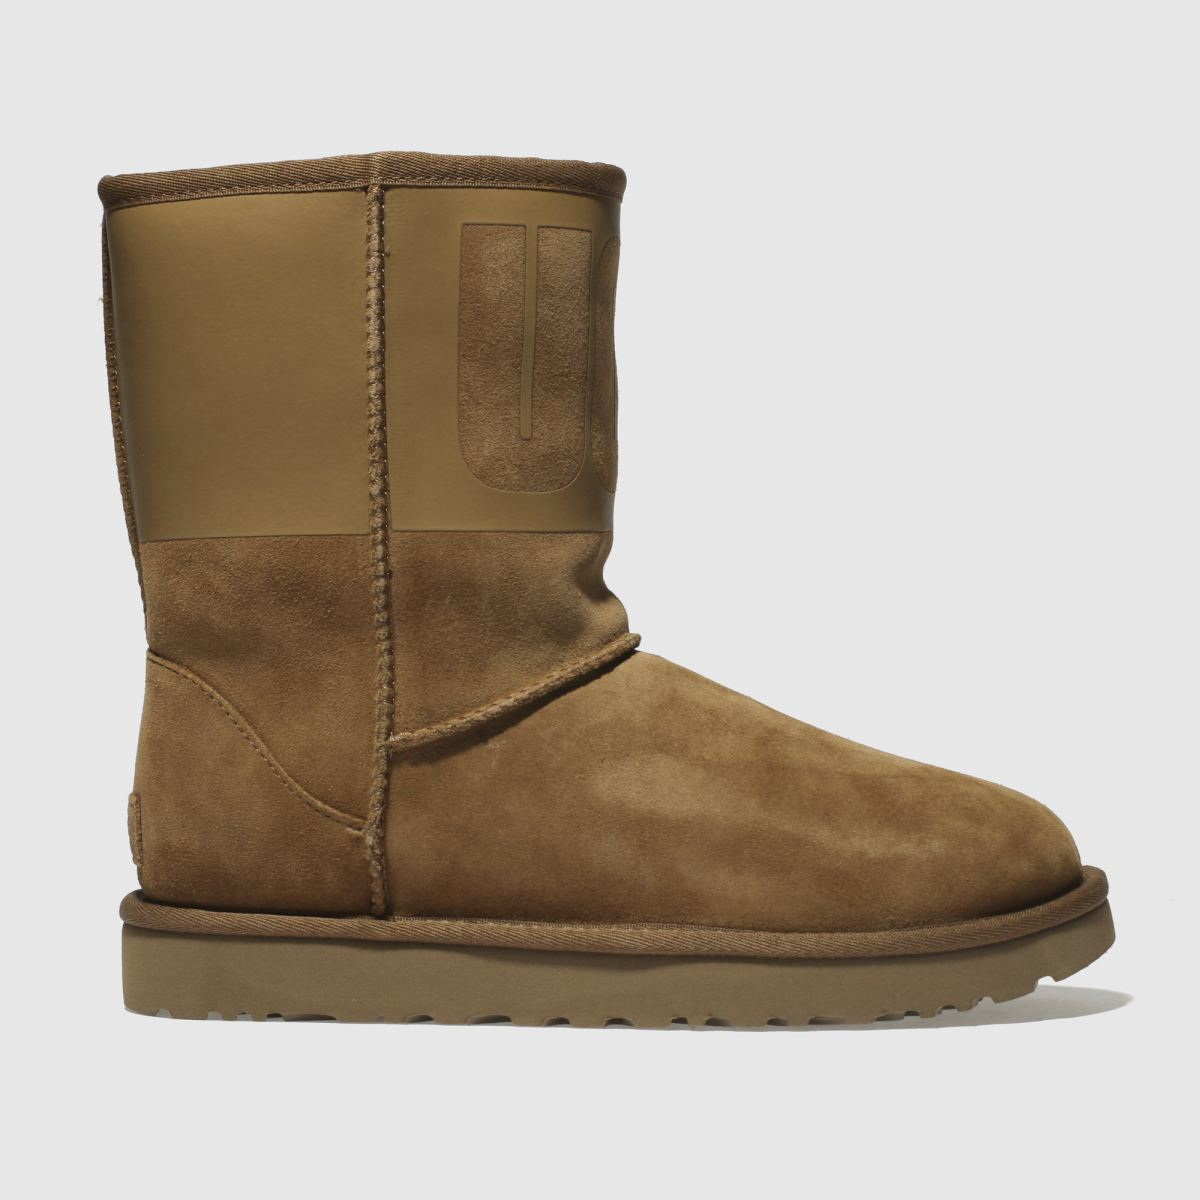 Ugg Tan Classic Short Rubber Boots